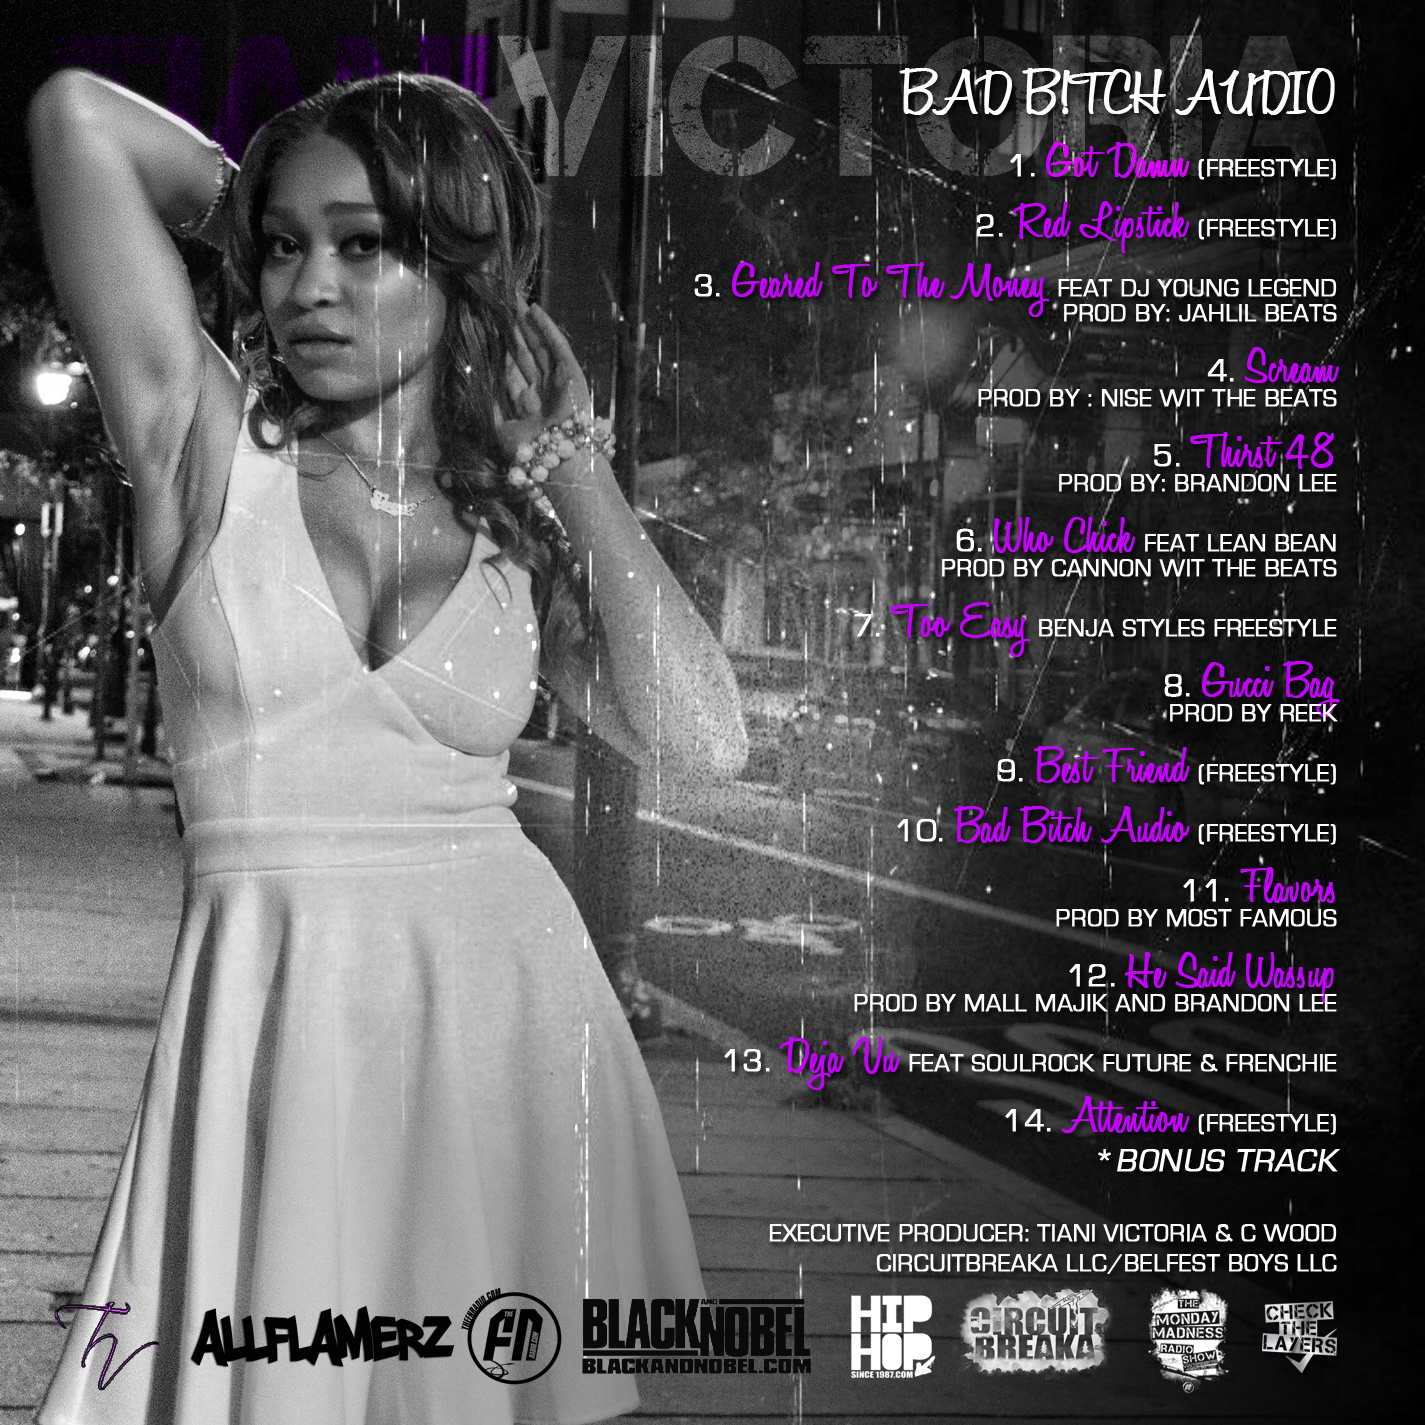 tiani-victoria-bad-bitch-audio-mixtape-HHS1987-2013-backcover-tracklist